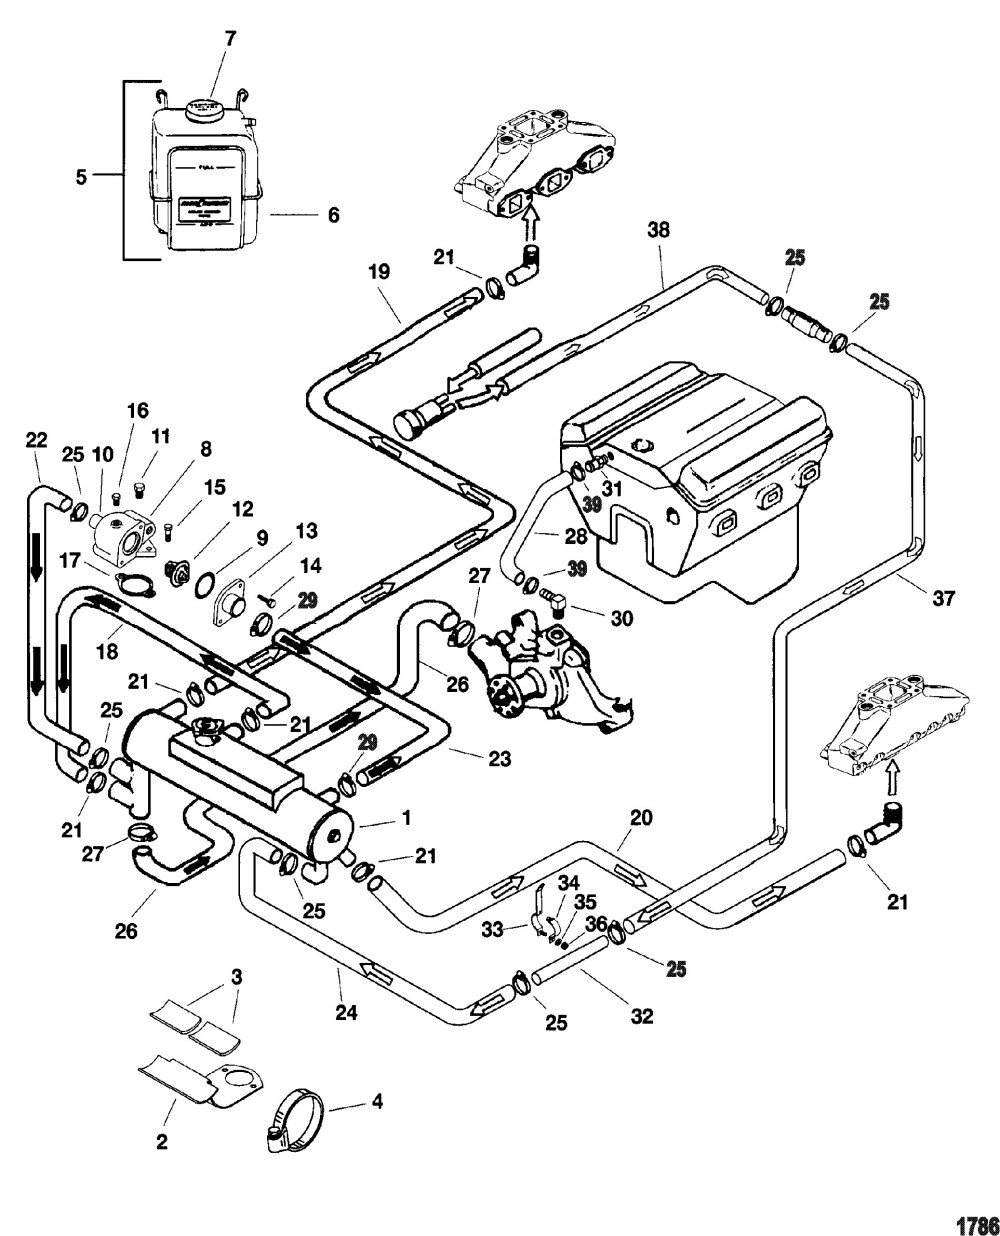 medium resolution of suzuki v6 engine diagram wiring diagram toolbox diagram for 2006 suzuki grand vitara 2 7 v6 gas components on diagram